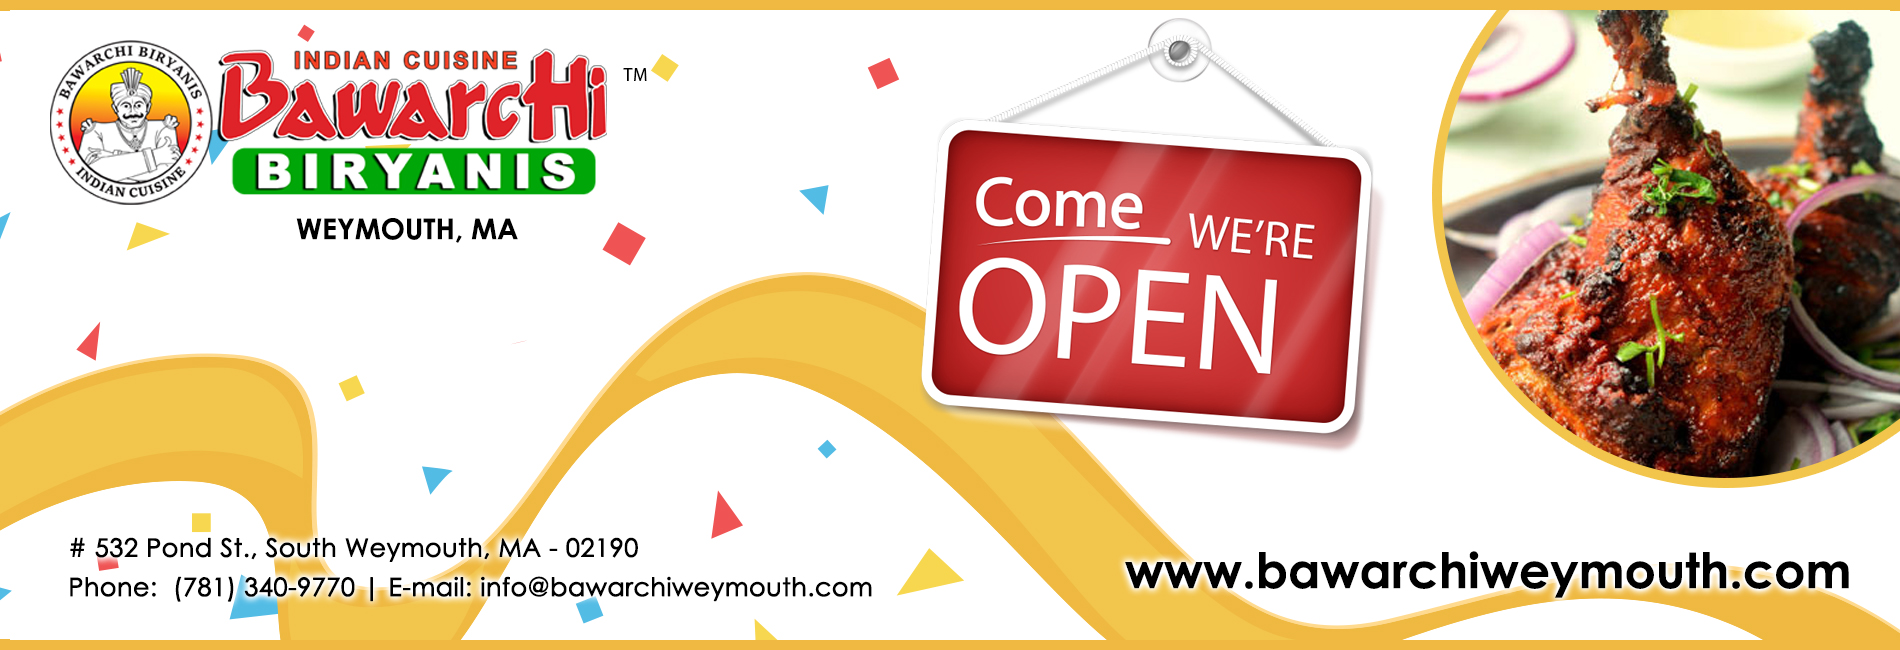 Bawarchi Weymouth, MA - Now Open